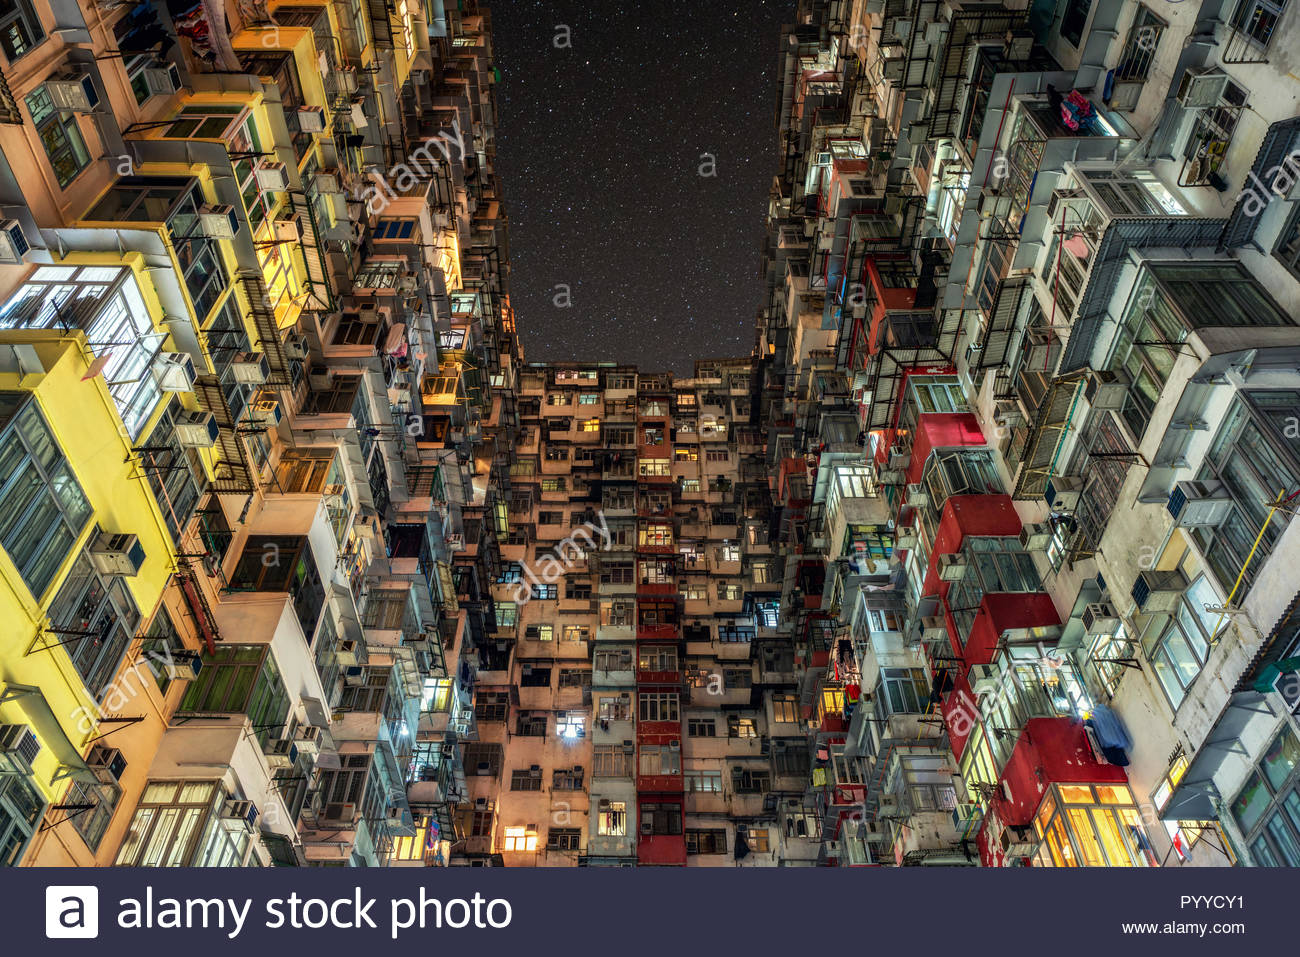 Stars in the night sky aboveHong Kong - Stock Image